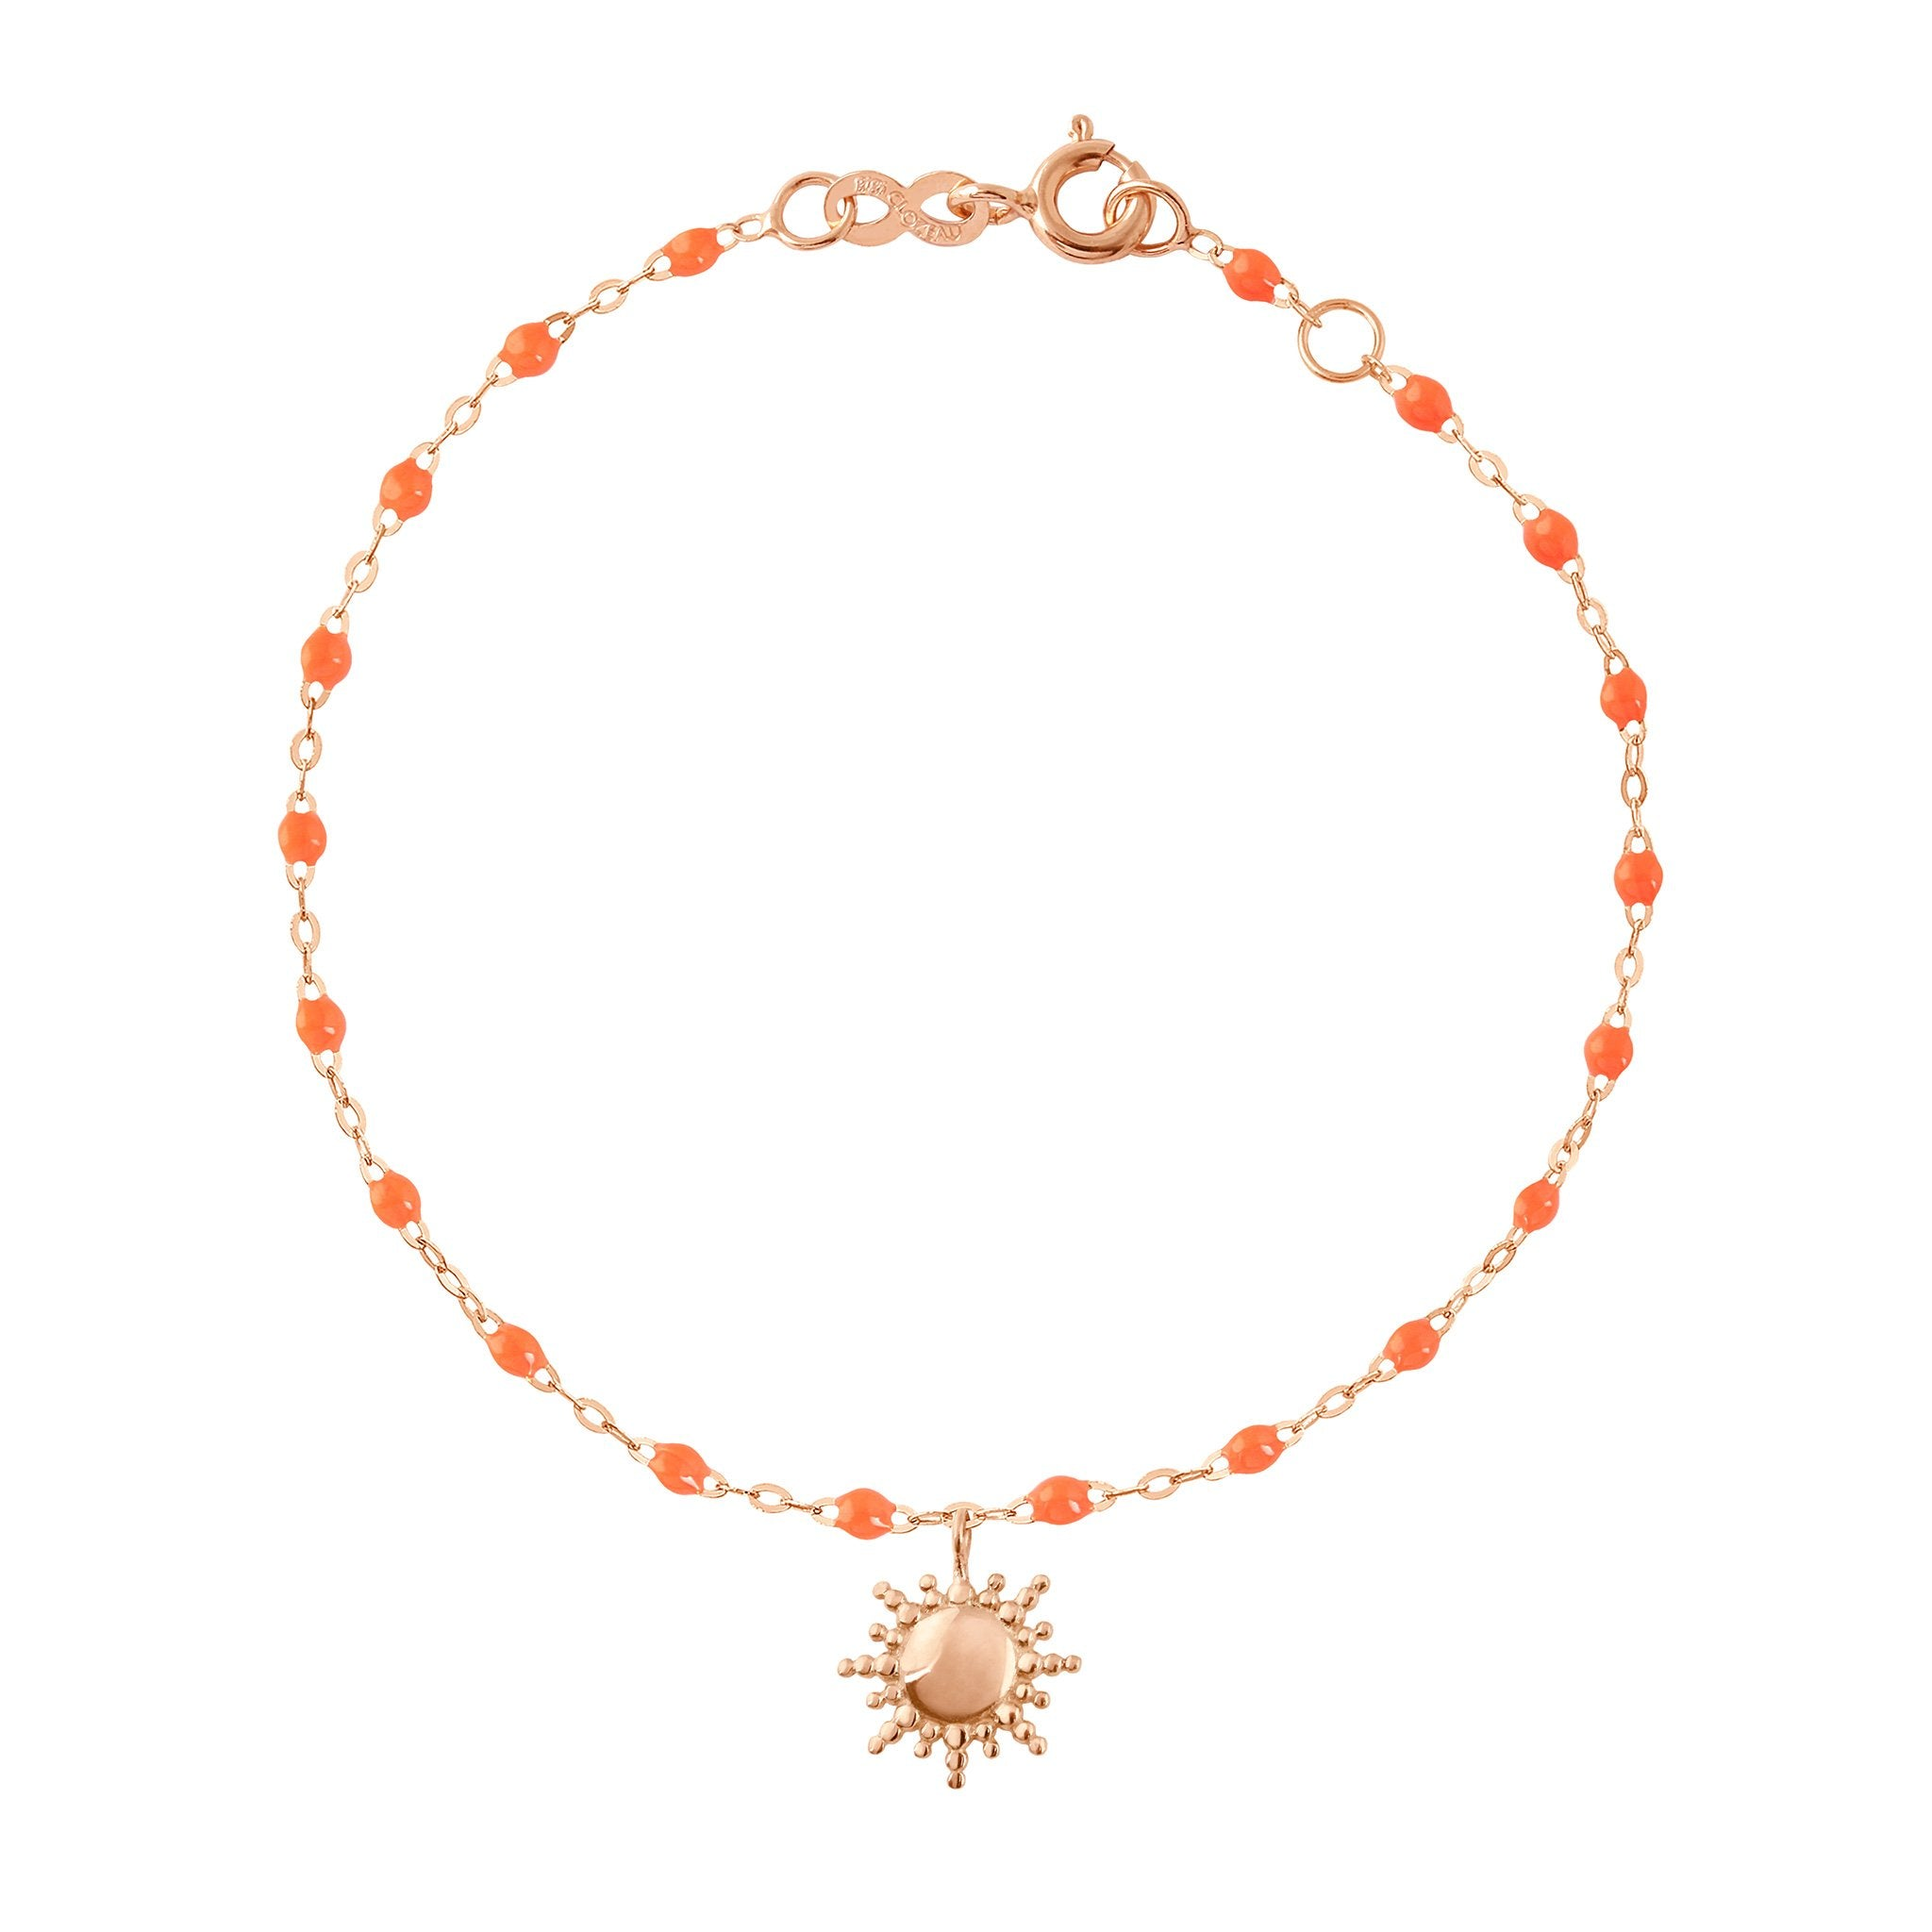 Gigi Clozeau - Sun Classic Gigi Orange bracelet, Rose Gold, 6.7""